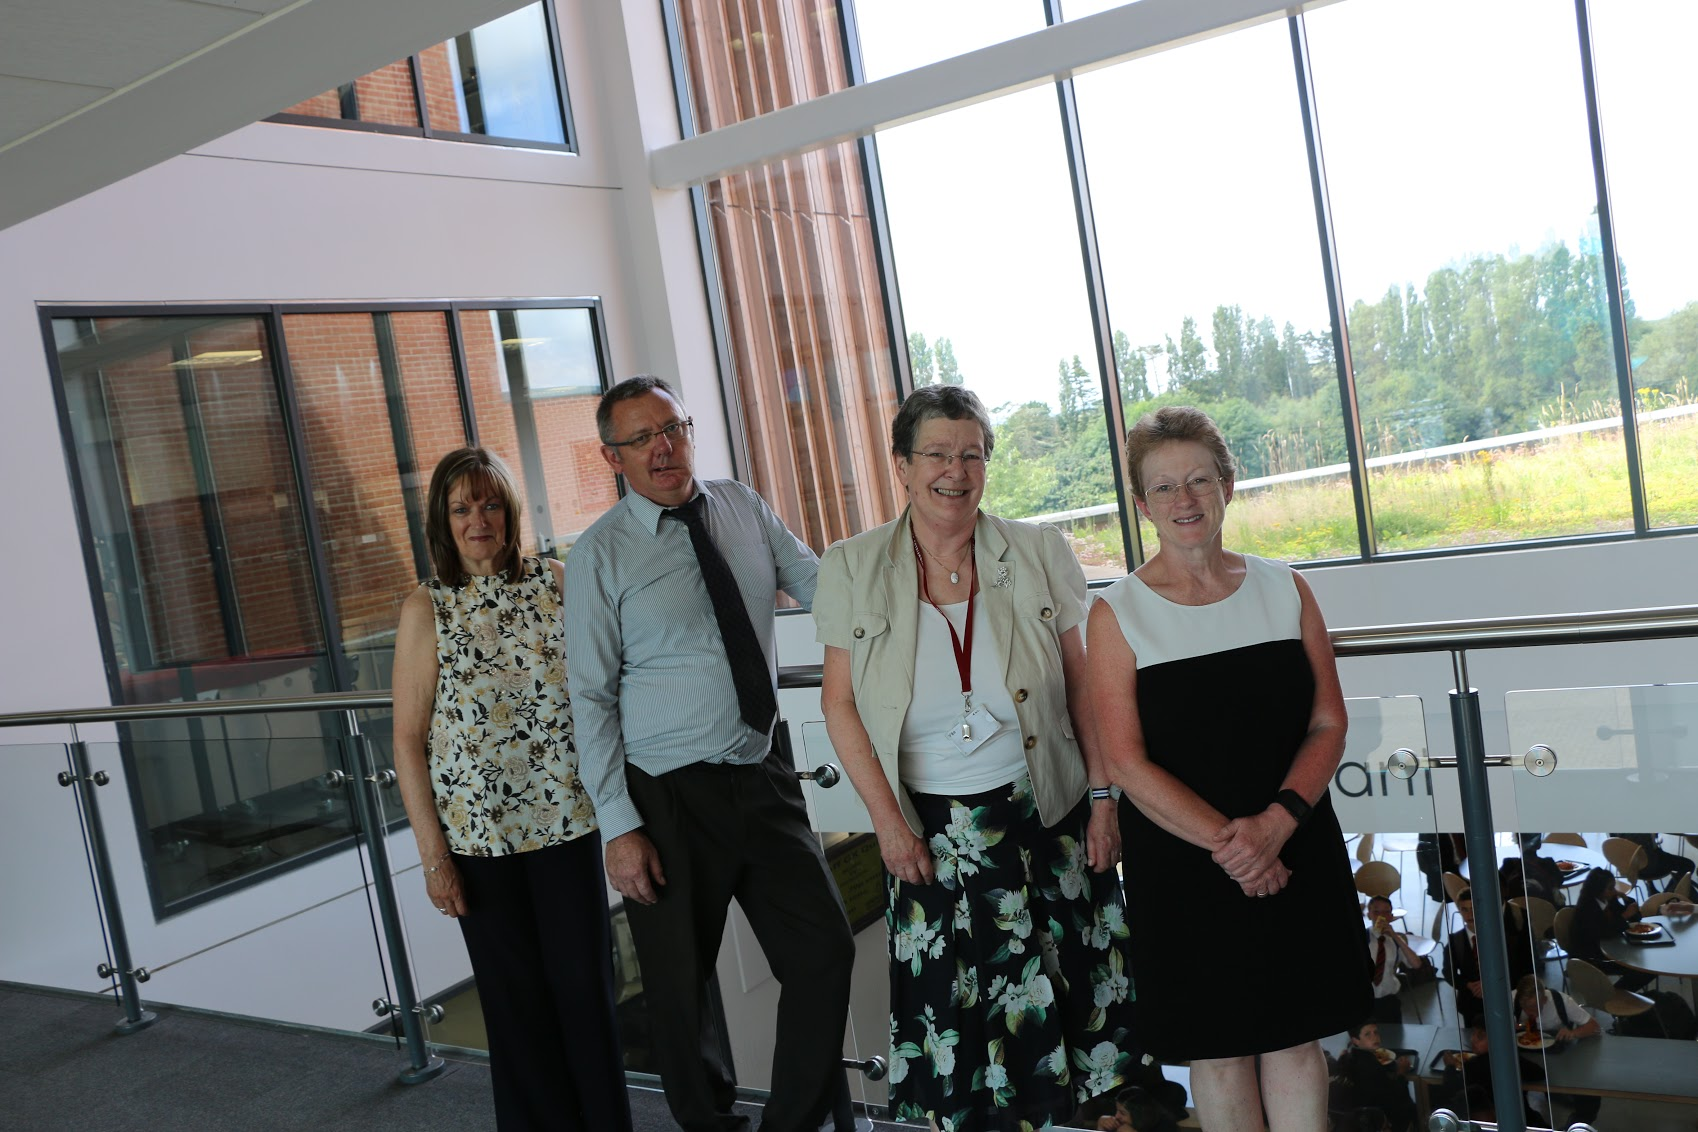 Mrs O'Shea, Mr Mark, Mrs Hall and Ms Neale are retiring after a combined 95 years at Highfields